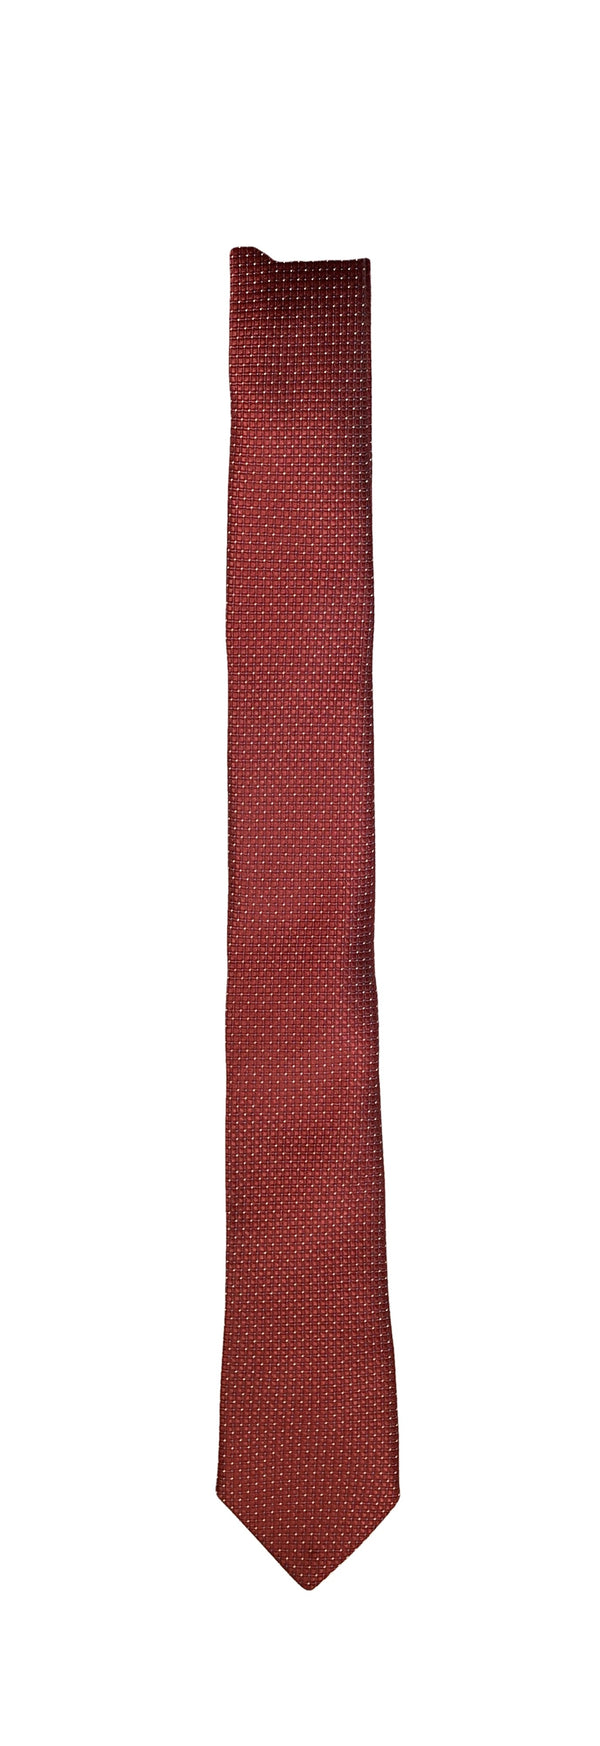 "TIE BOYS W/DOTS, 48"" LONG (Click for colors)"